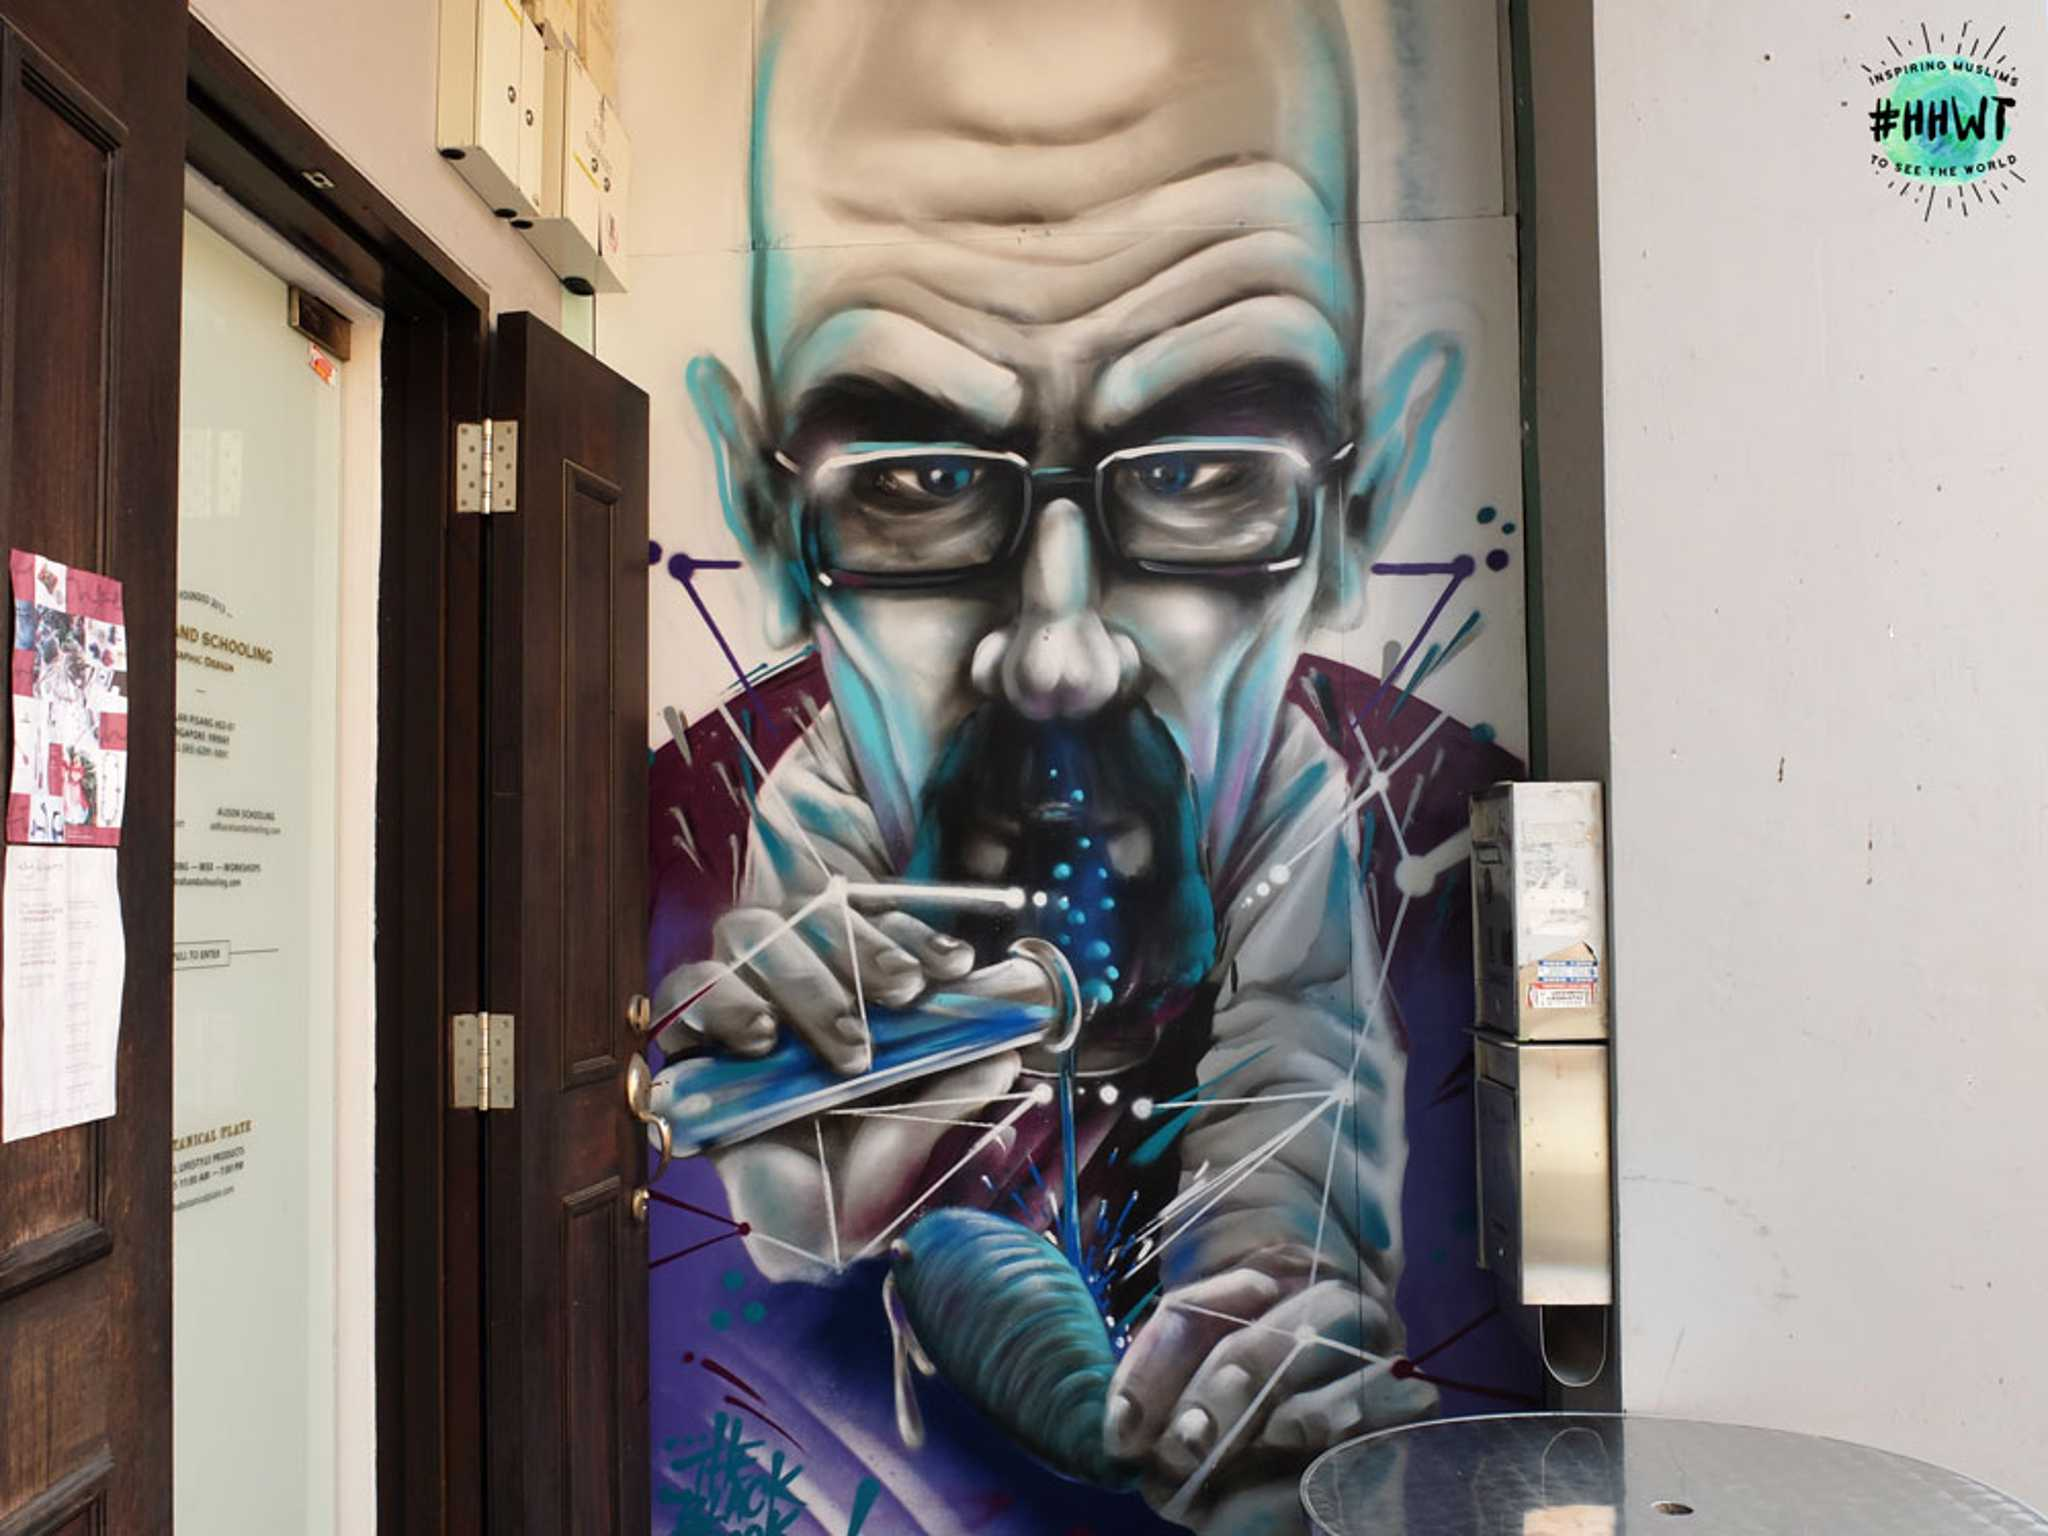 Don't miss this stunning portrait of Breaking Bad's Walter White!